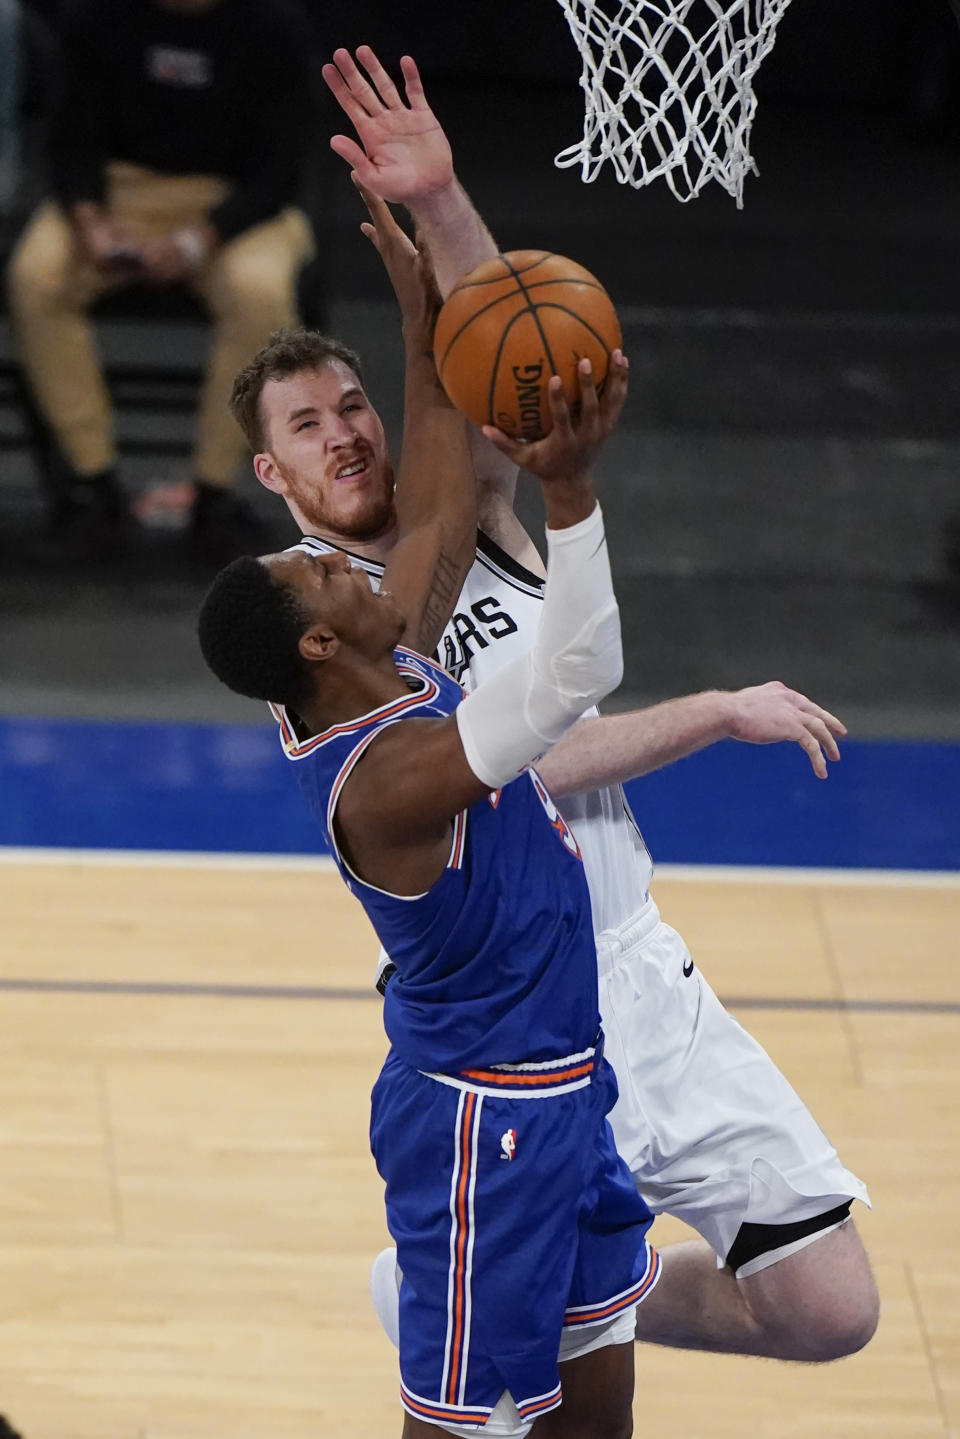 New York Knicks' RJ Barrett, left, drives past San Antonio Spurs' Jakob Poeltl during the second half of an NBA basketball game Thursday, May 13, 2021, in New York. (AP Photo/Frank Franklin II, Pool)